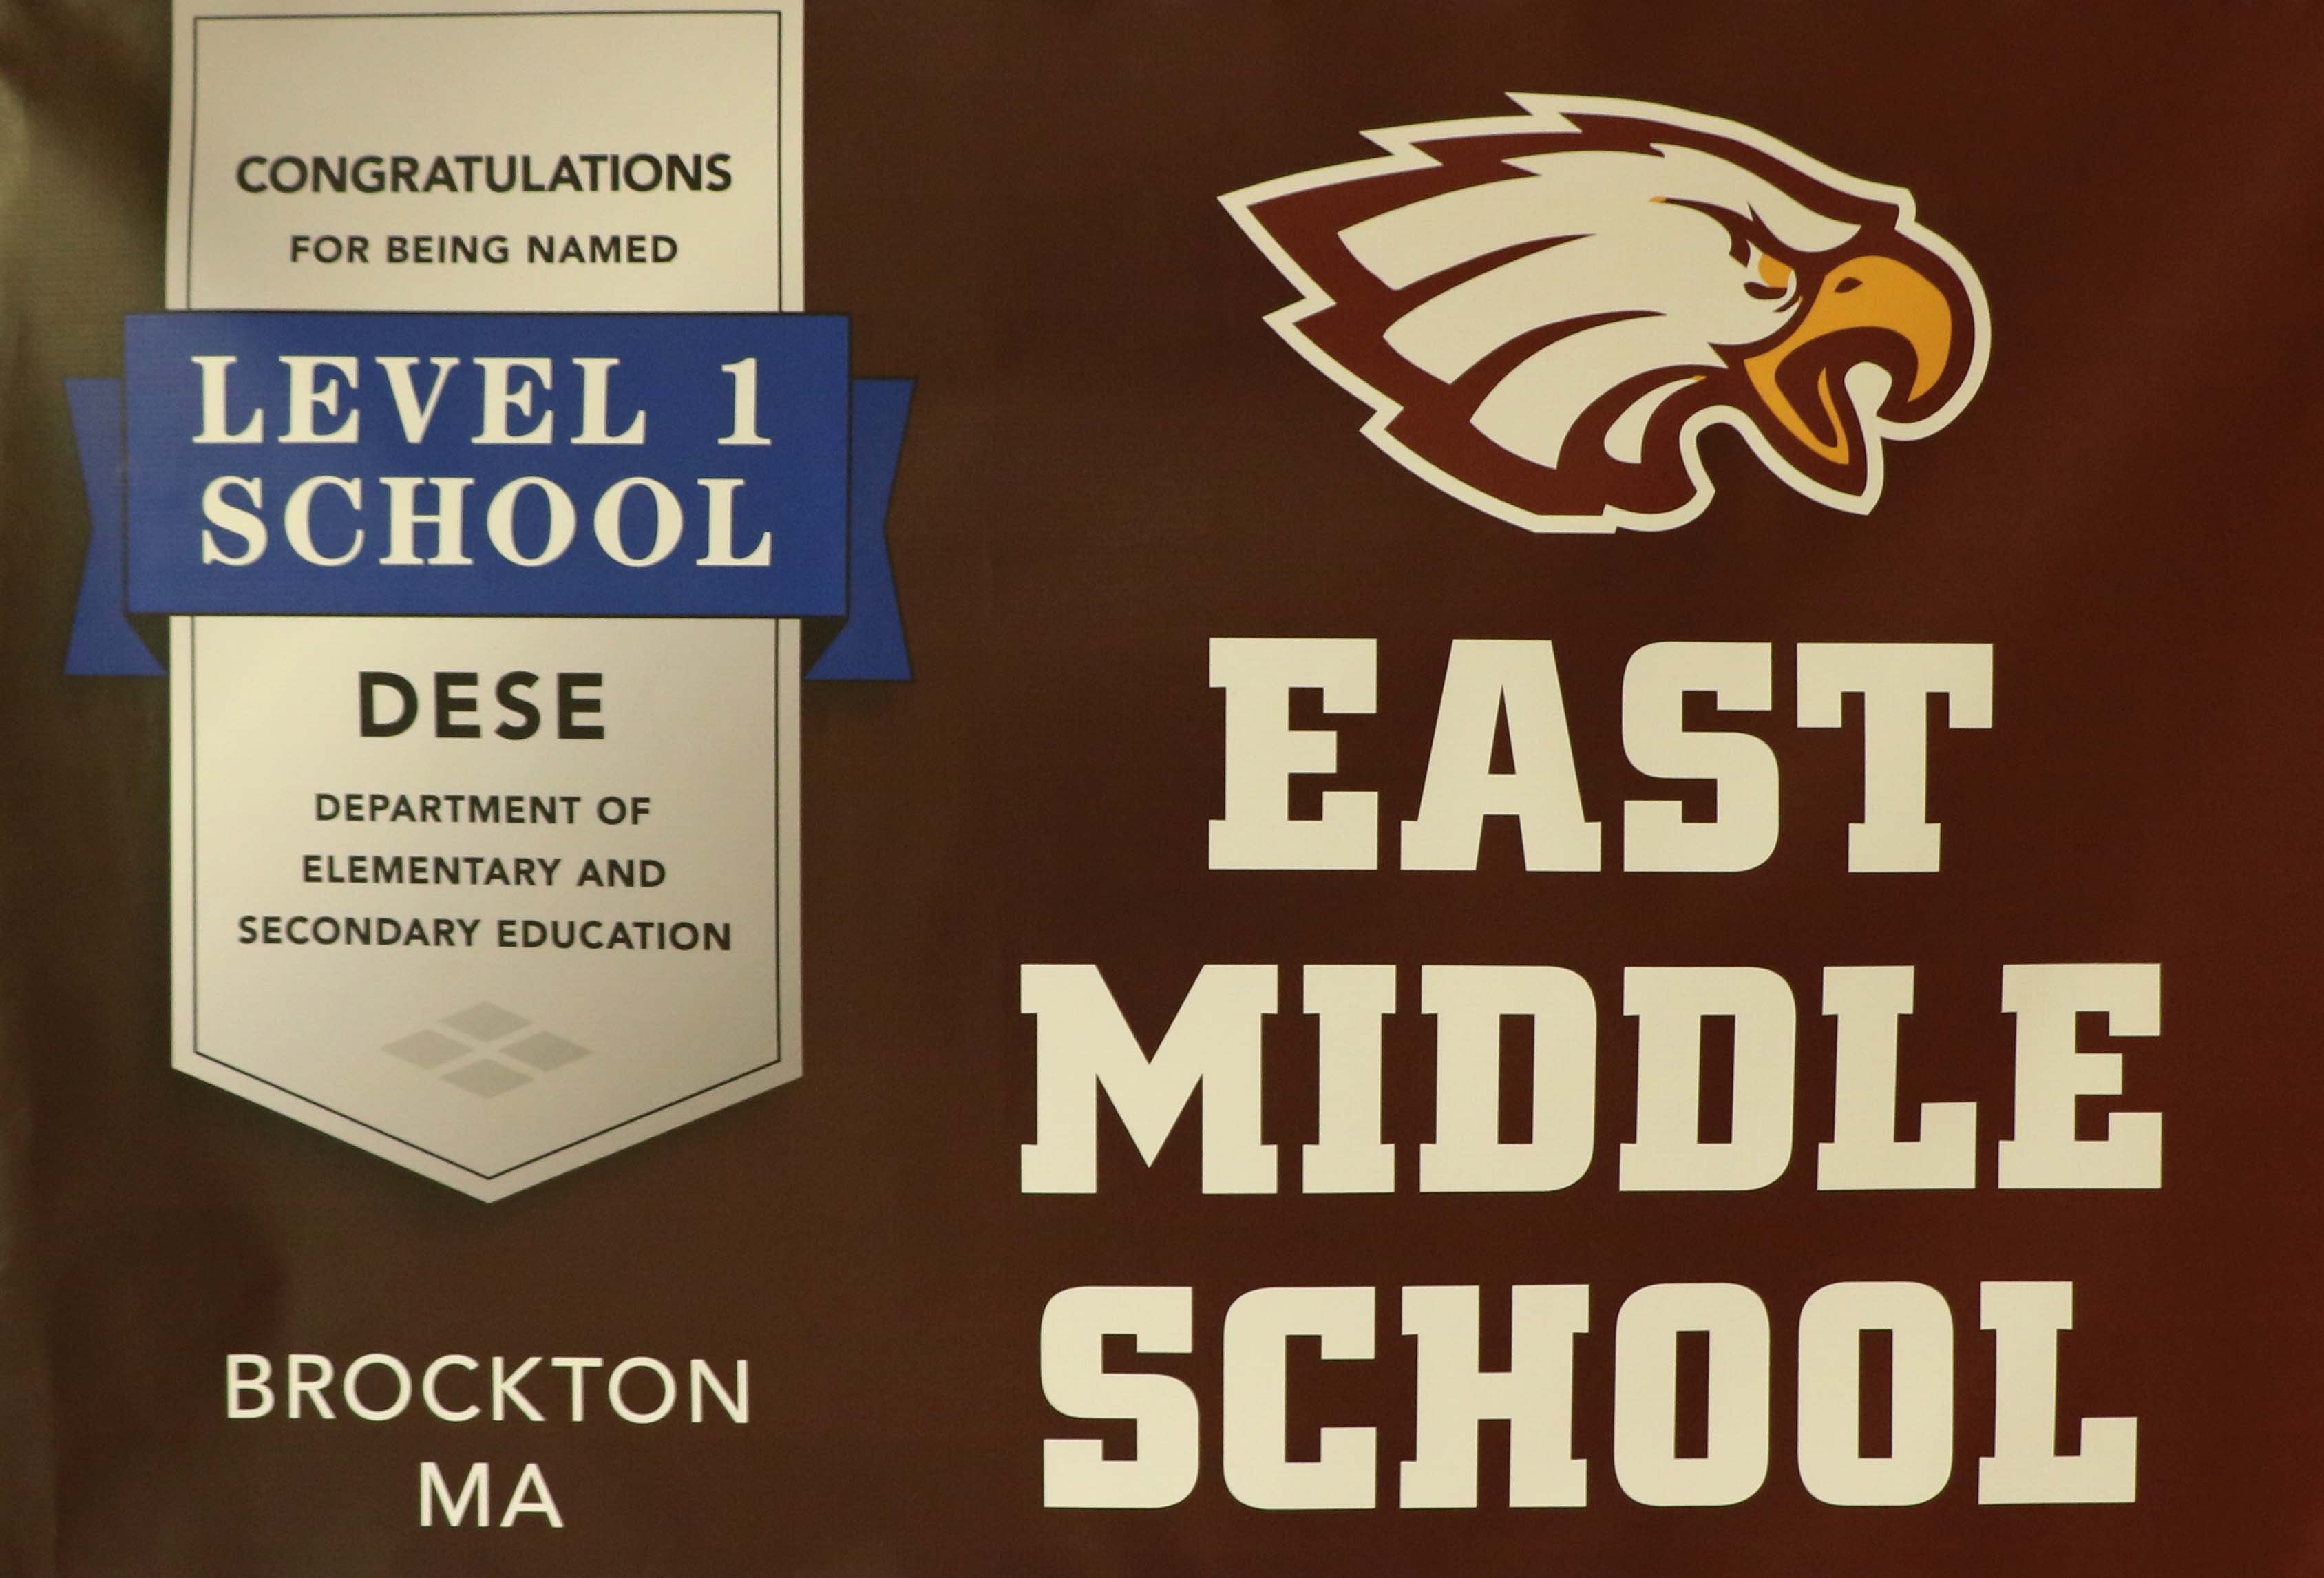 Image: East Middle School Level 1 School